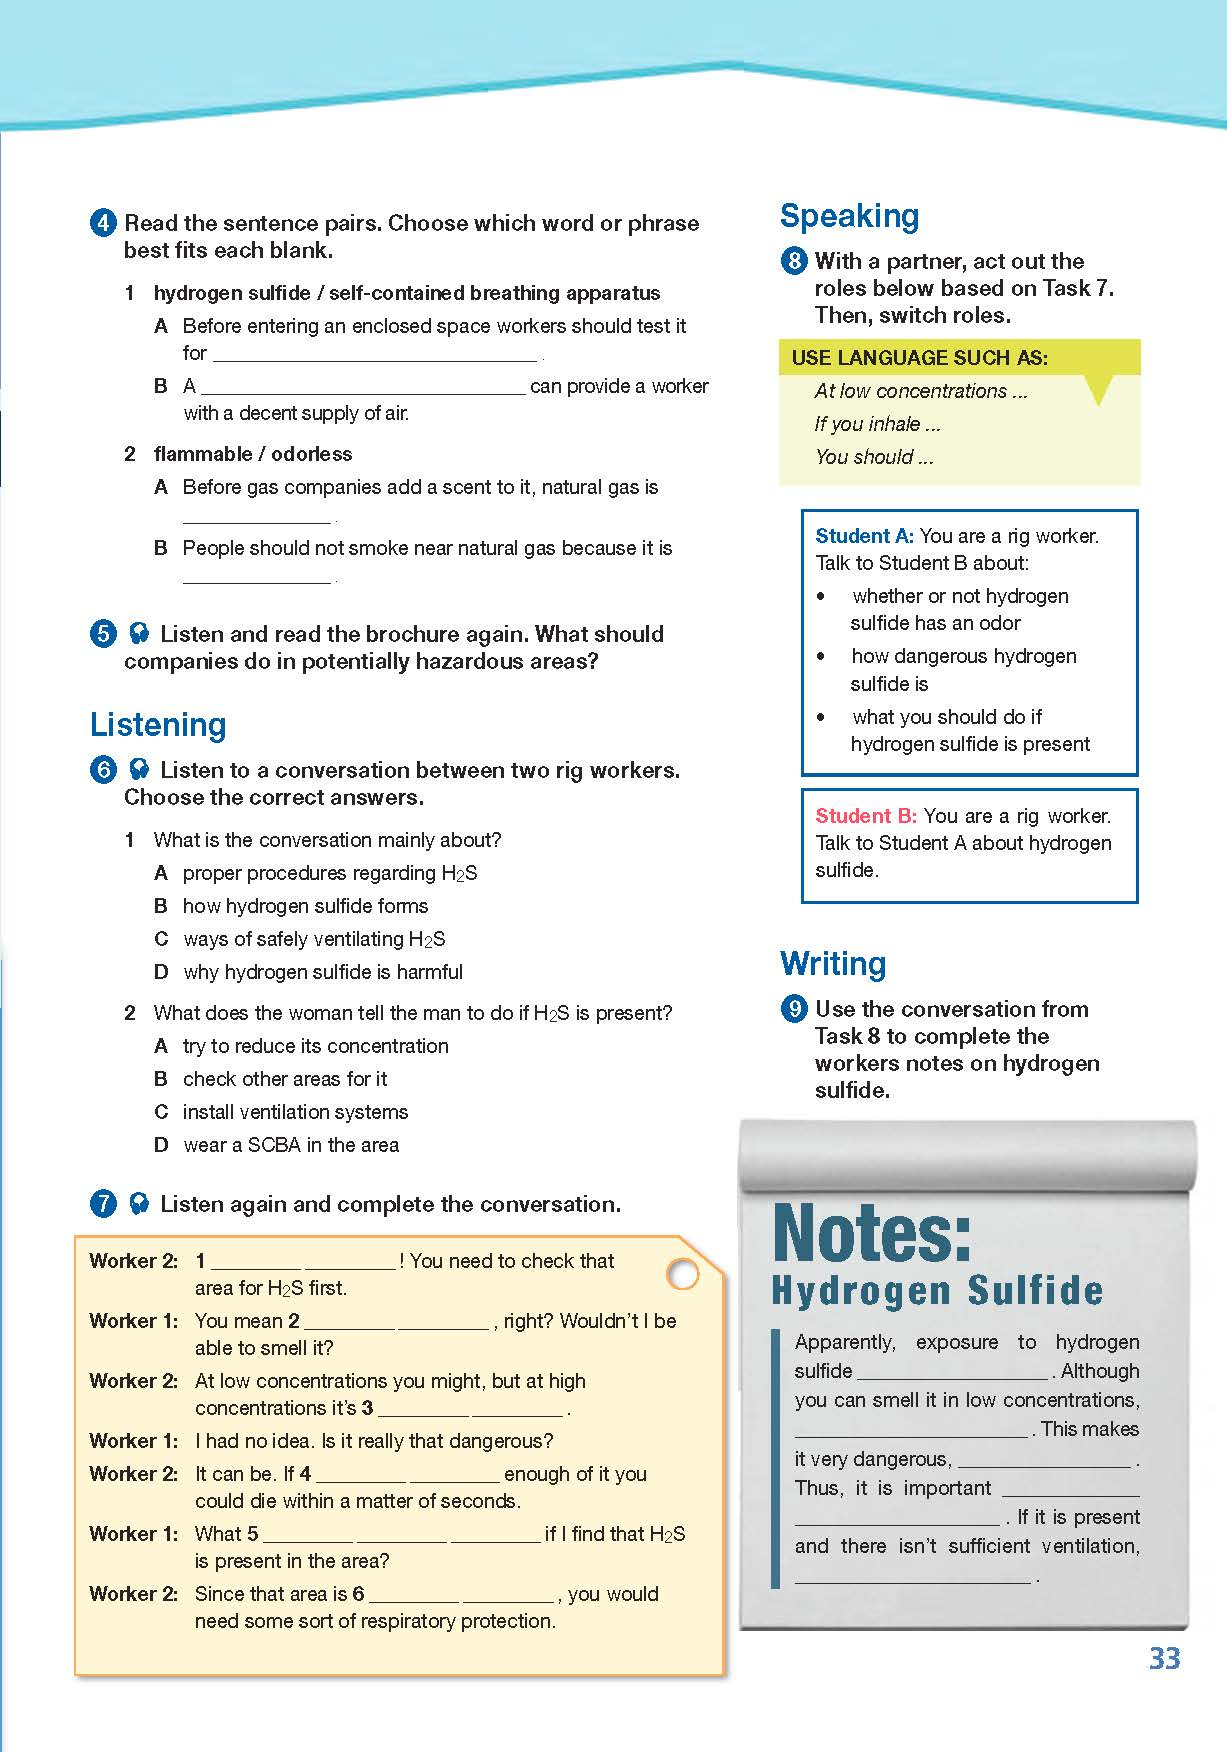 ESP English for Specific Purposes - Career Paths: Natural Gas II - Sample Page 4